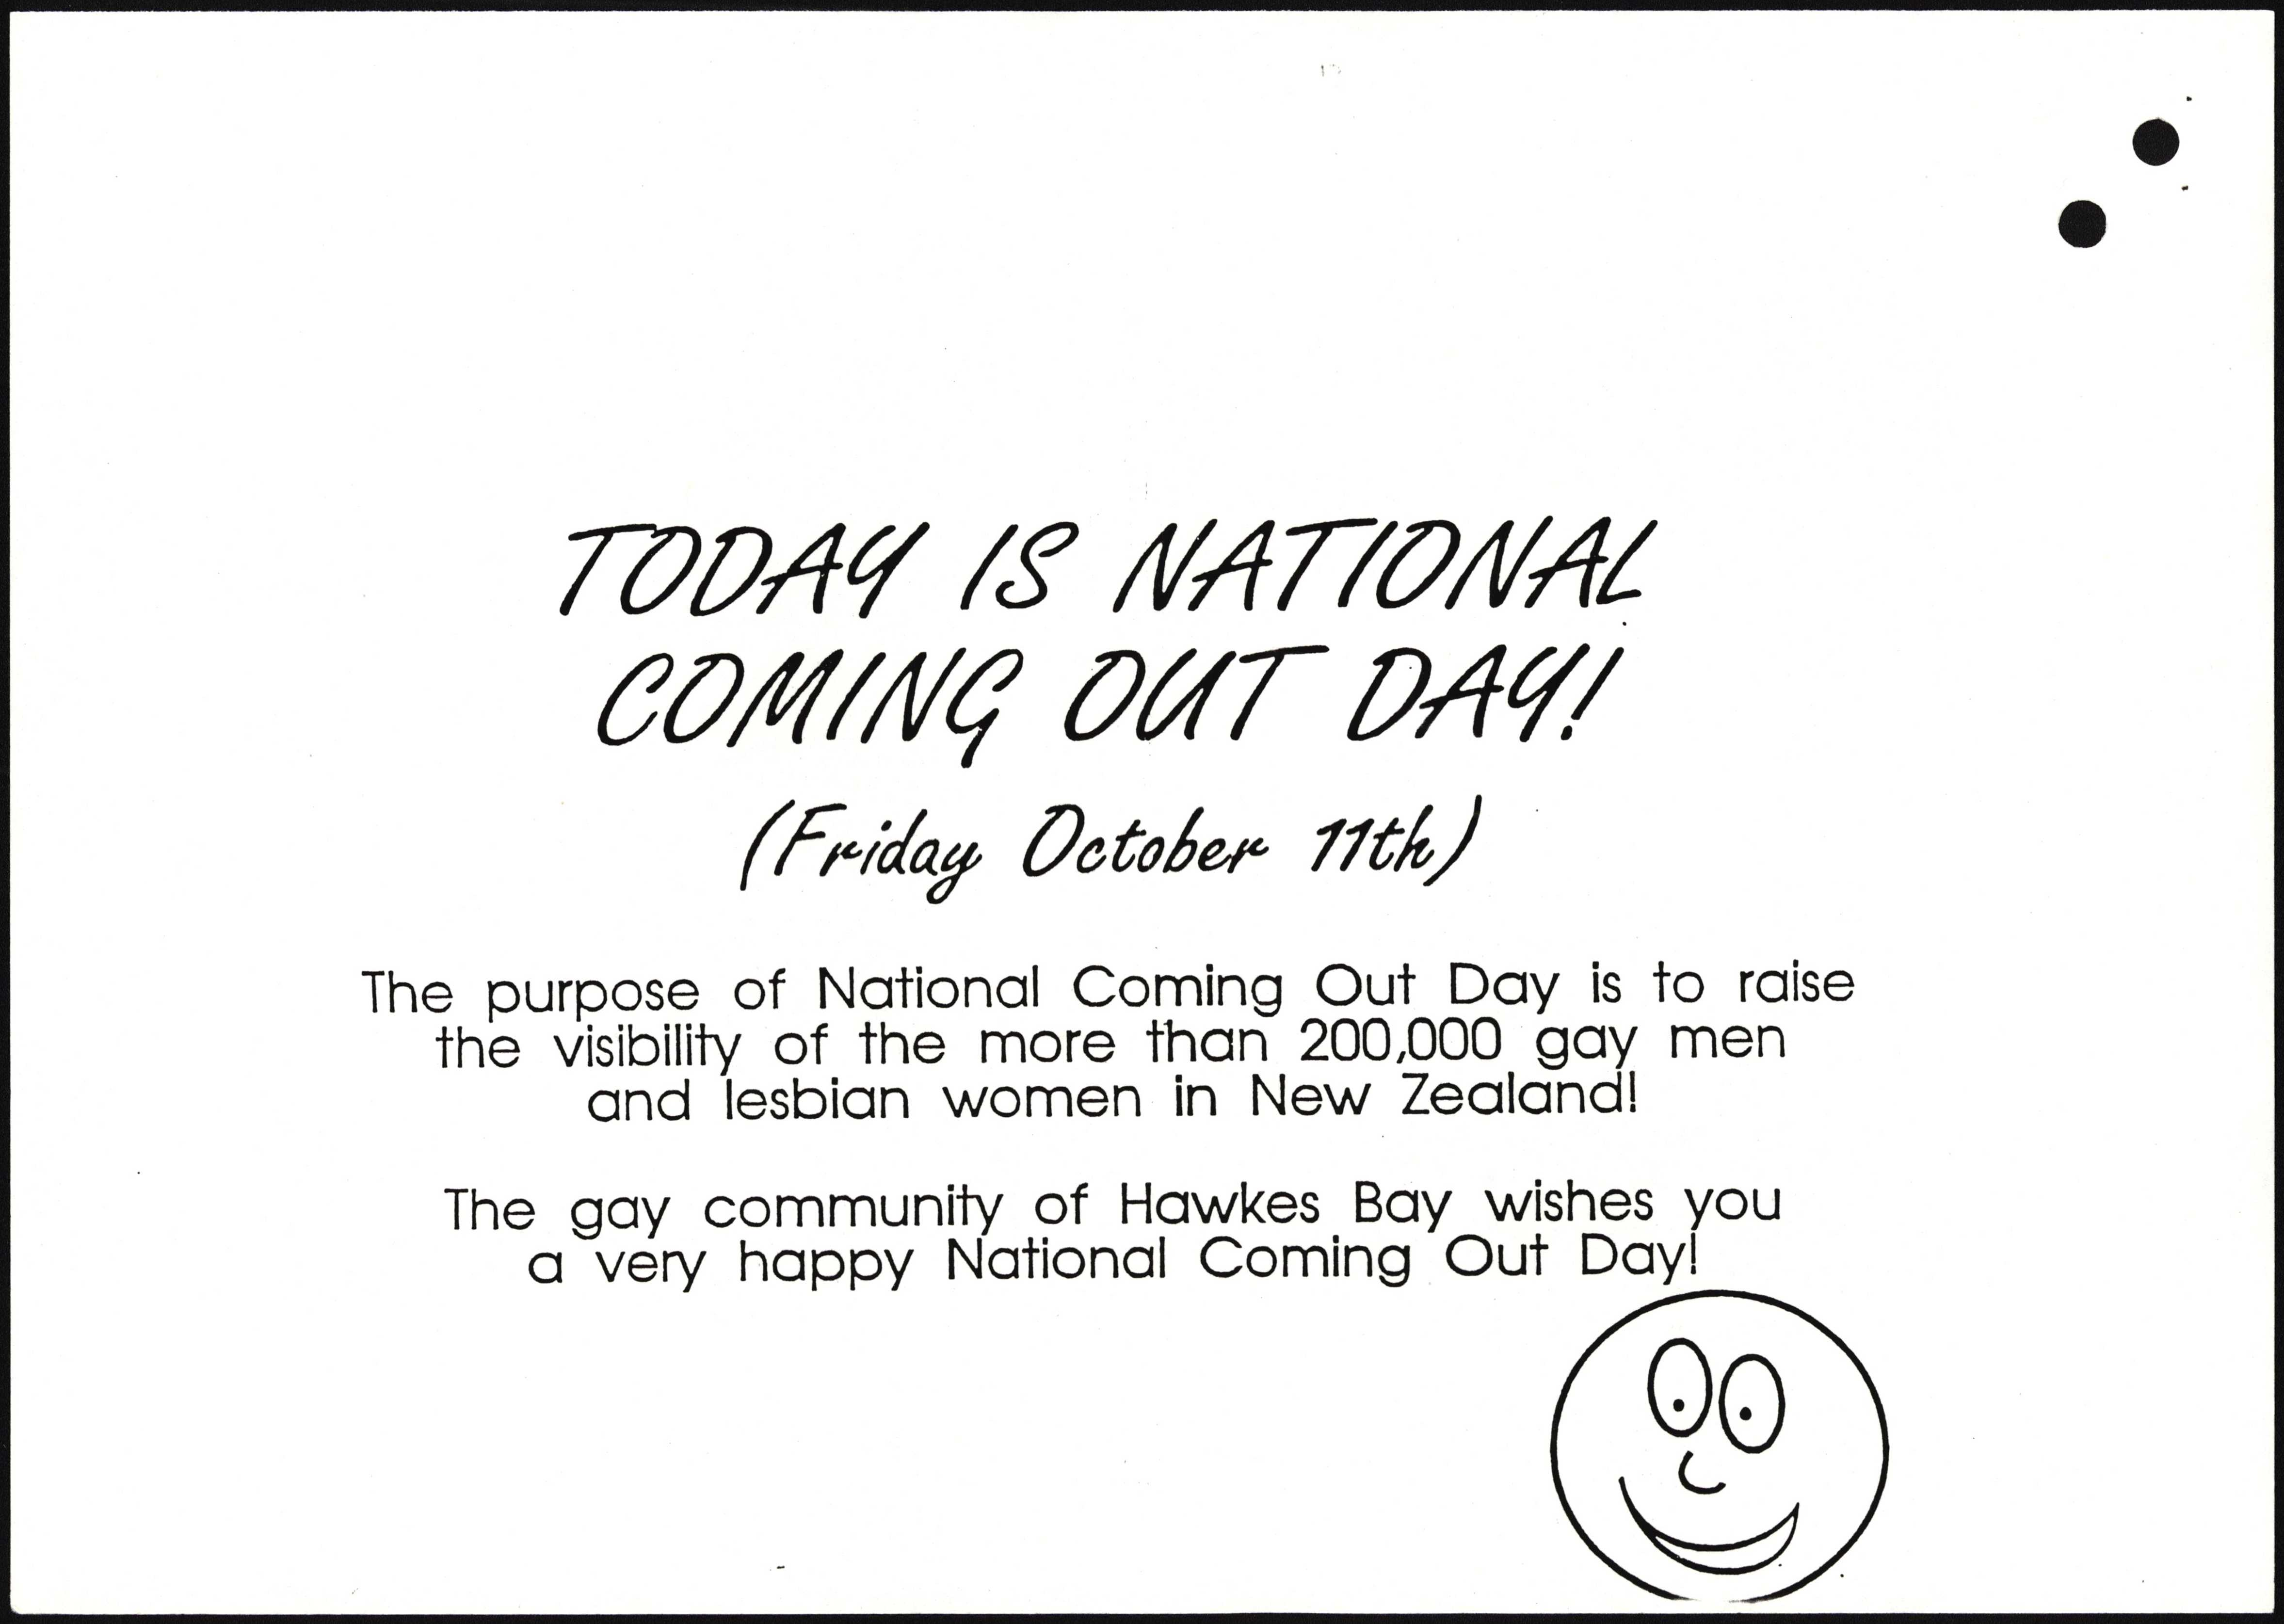 Image of a white paper poster with black text. There is a hand drawn smiley face at the lower right corner